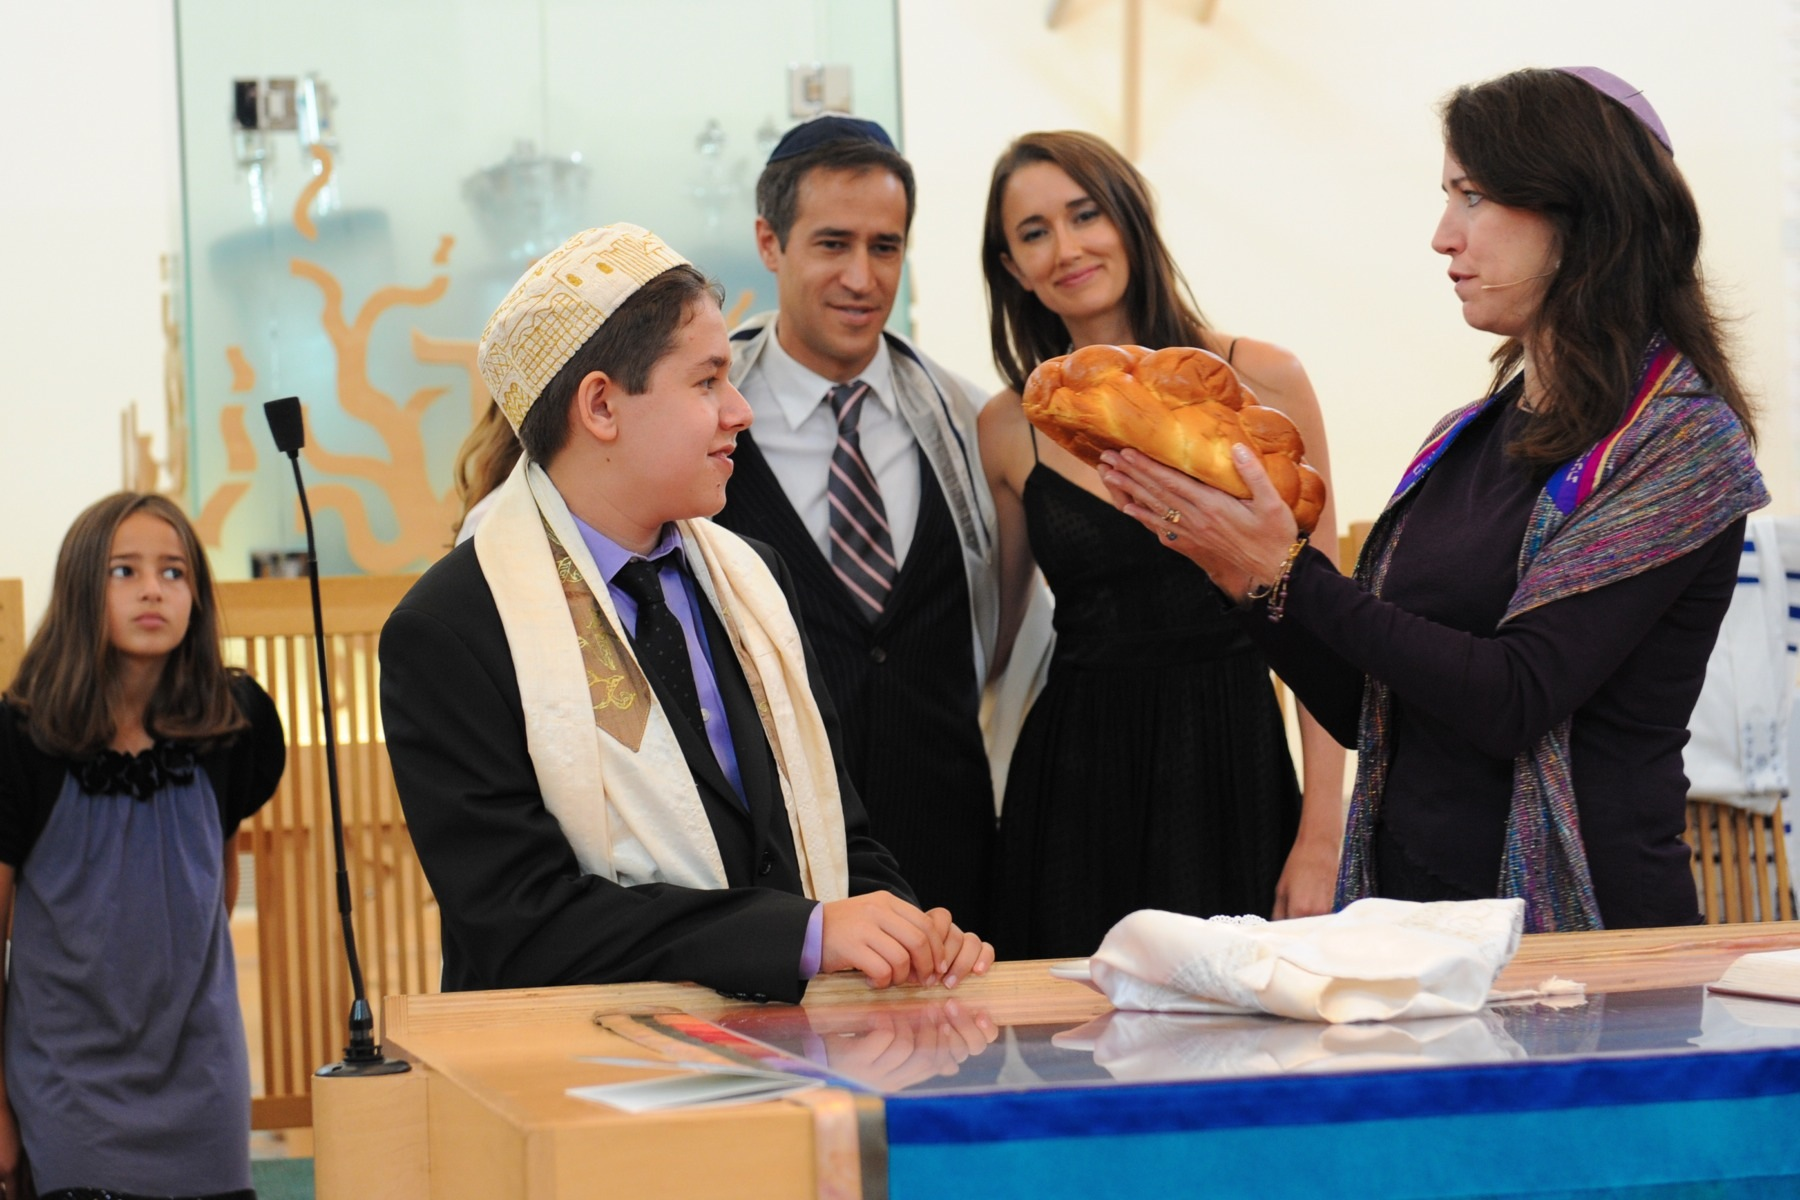 bat_mitzvah_bar_mitzvah_san_francisco_bay_area_photographer_party_photography_162